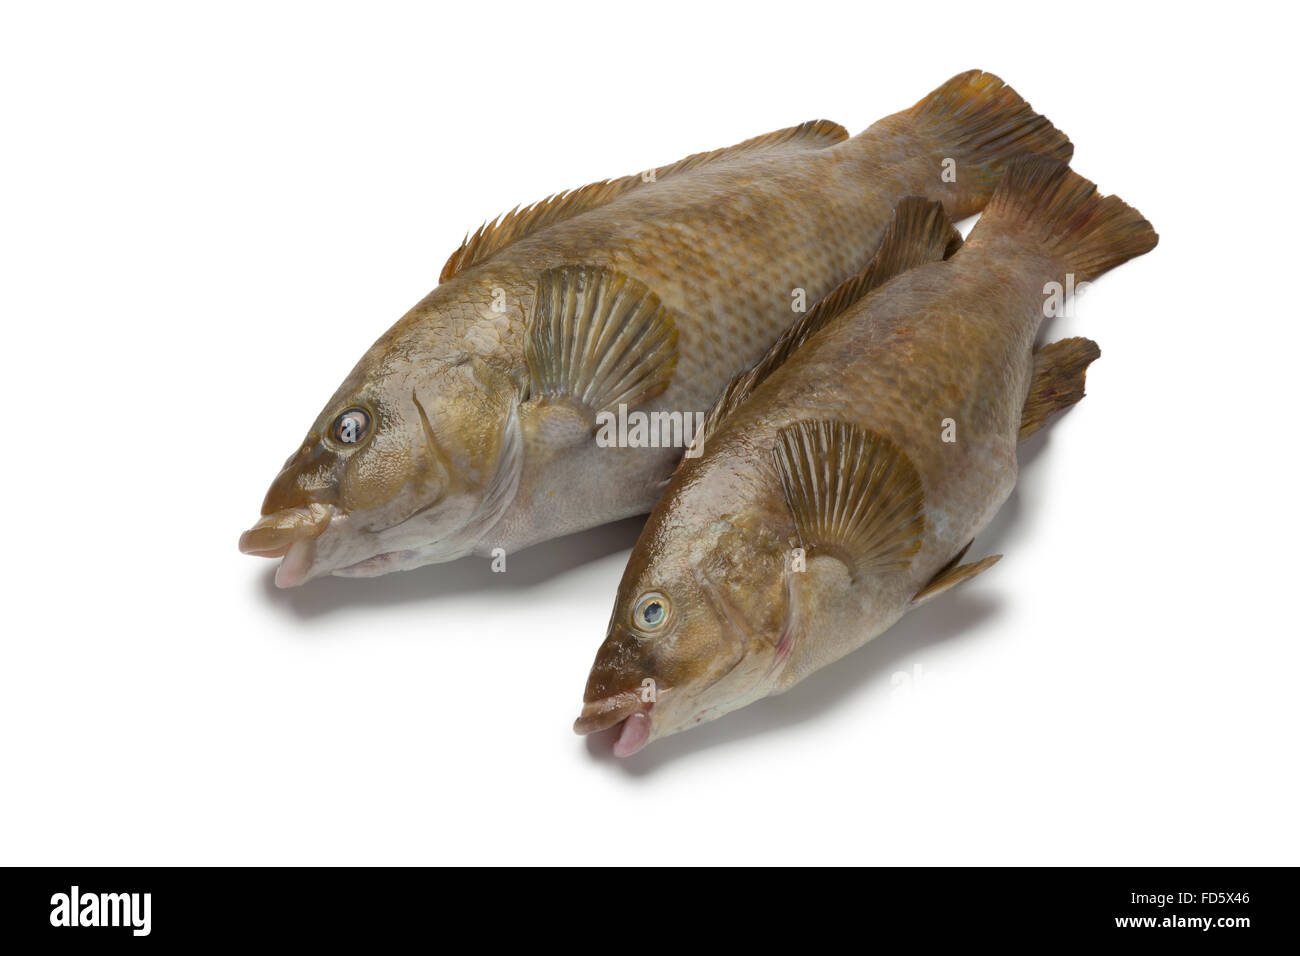 Two fresh brown wrasse fishes on white background - Stock Image